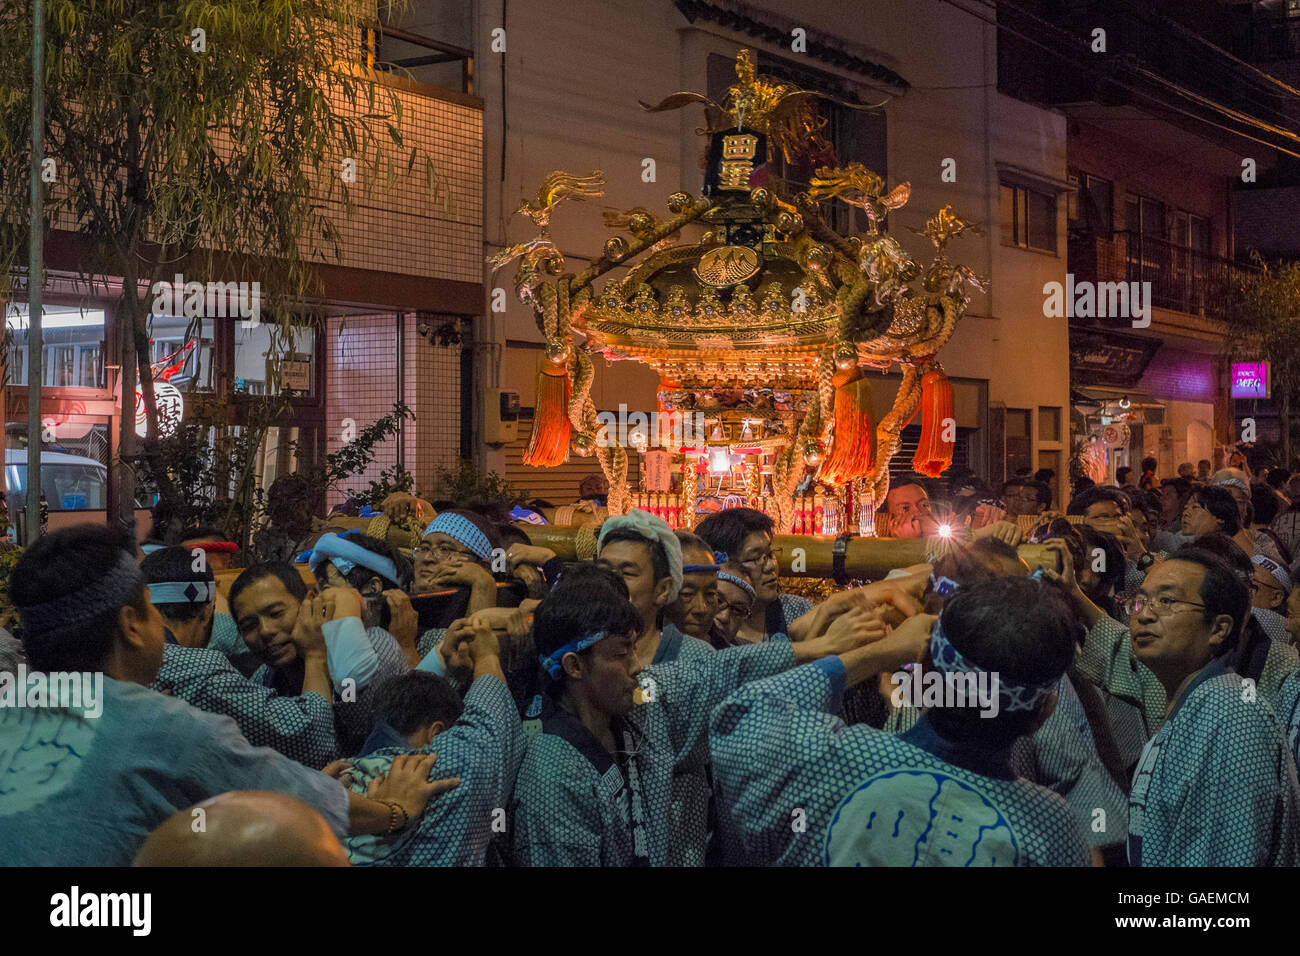 People carrying a shrine at night in the annual festival in Tokyo - Stock Image